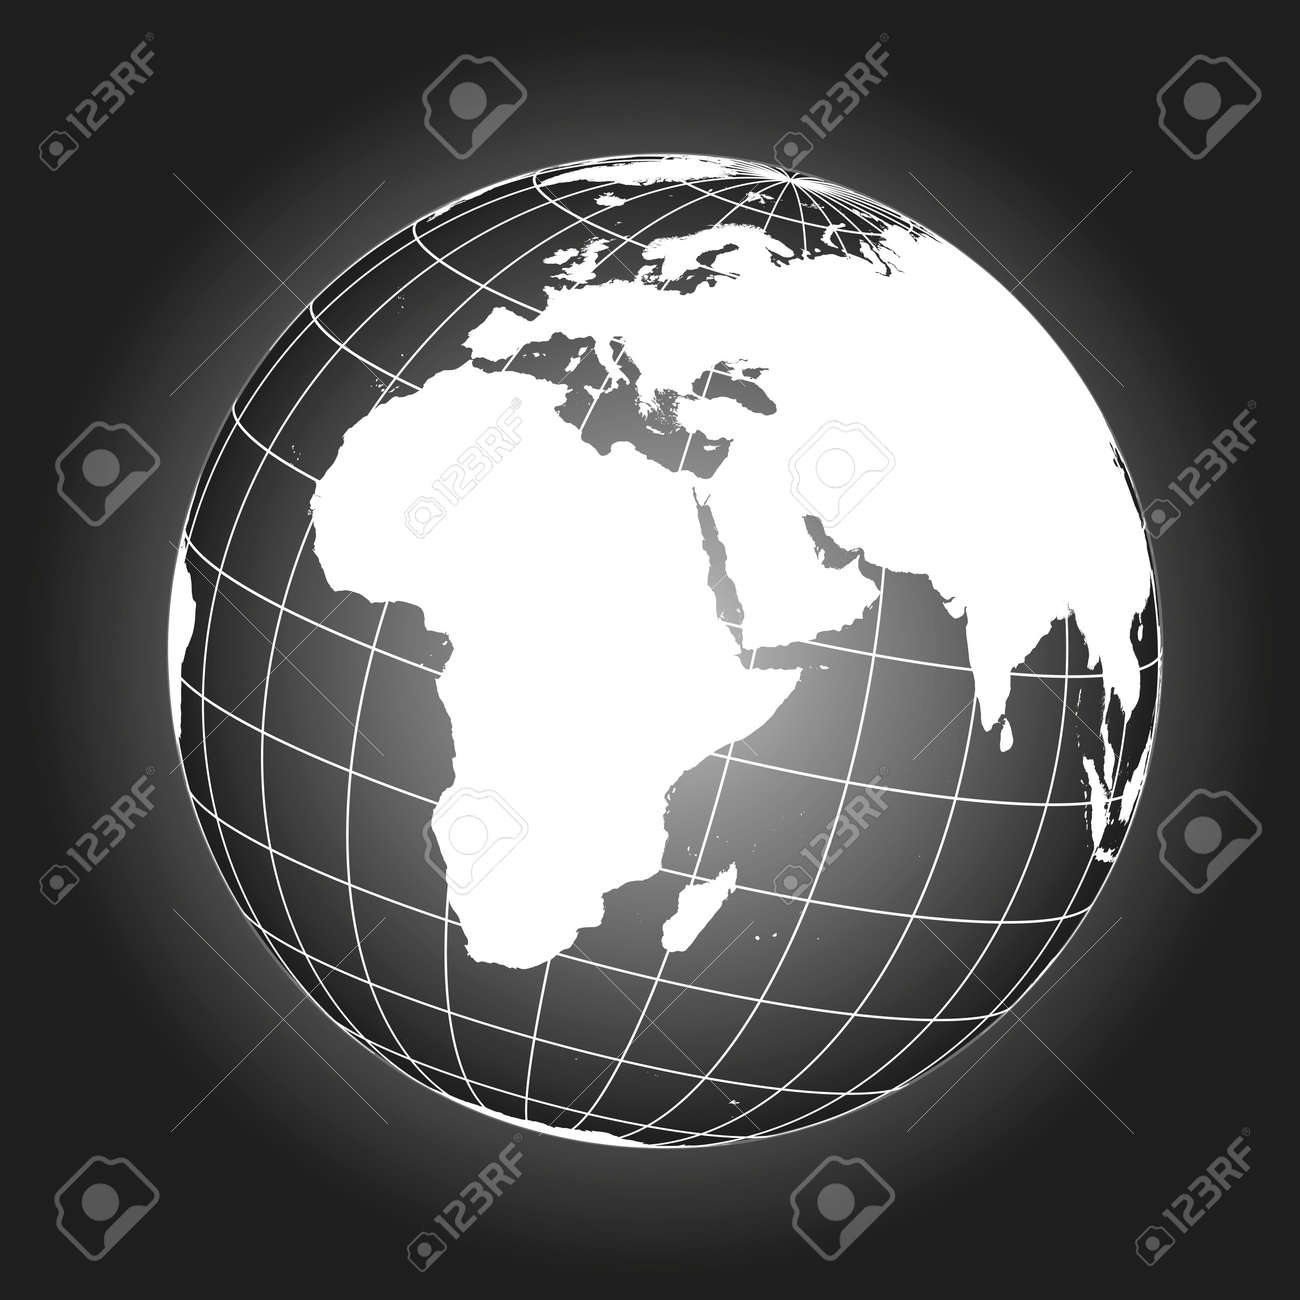 Europe and africa map europe africa russia asia north pole europe and africa map europe africa russia asia north pole gumiabroncs Image collections